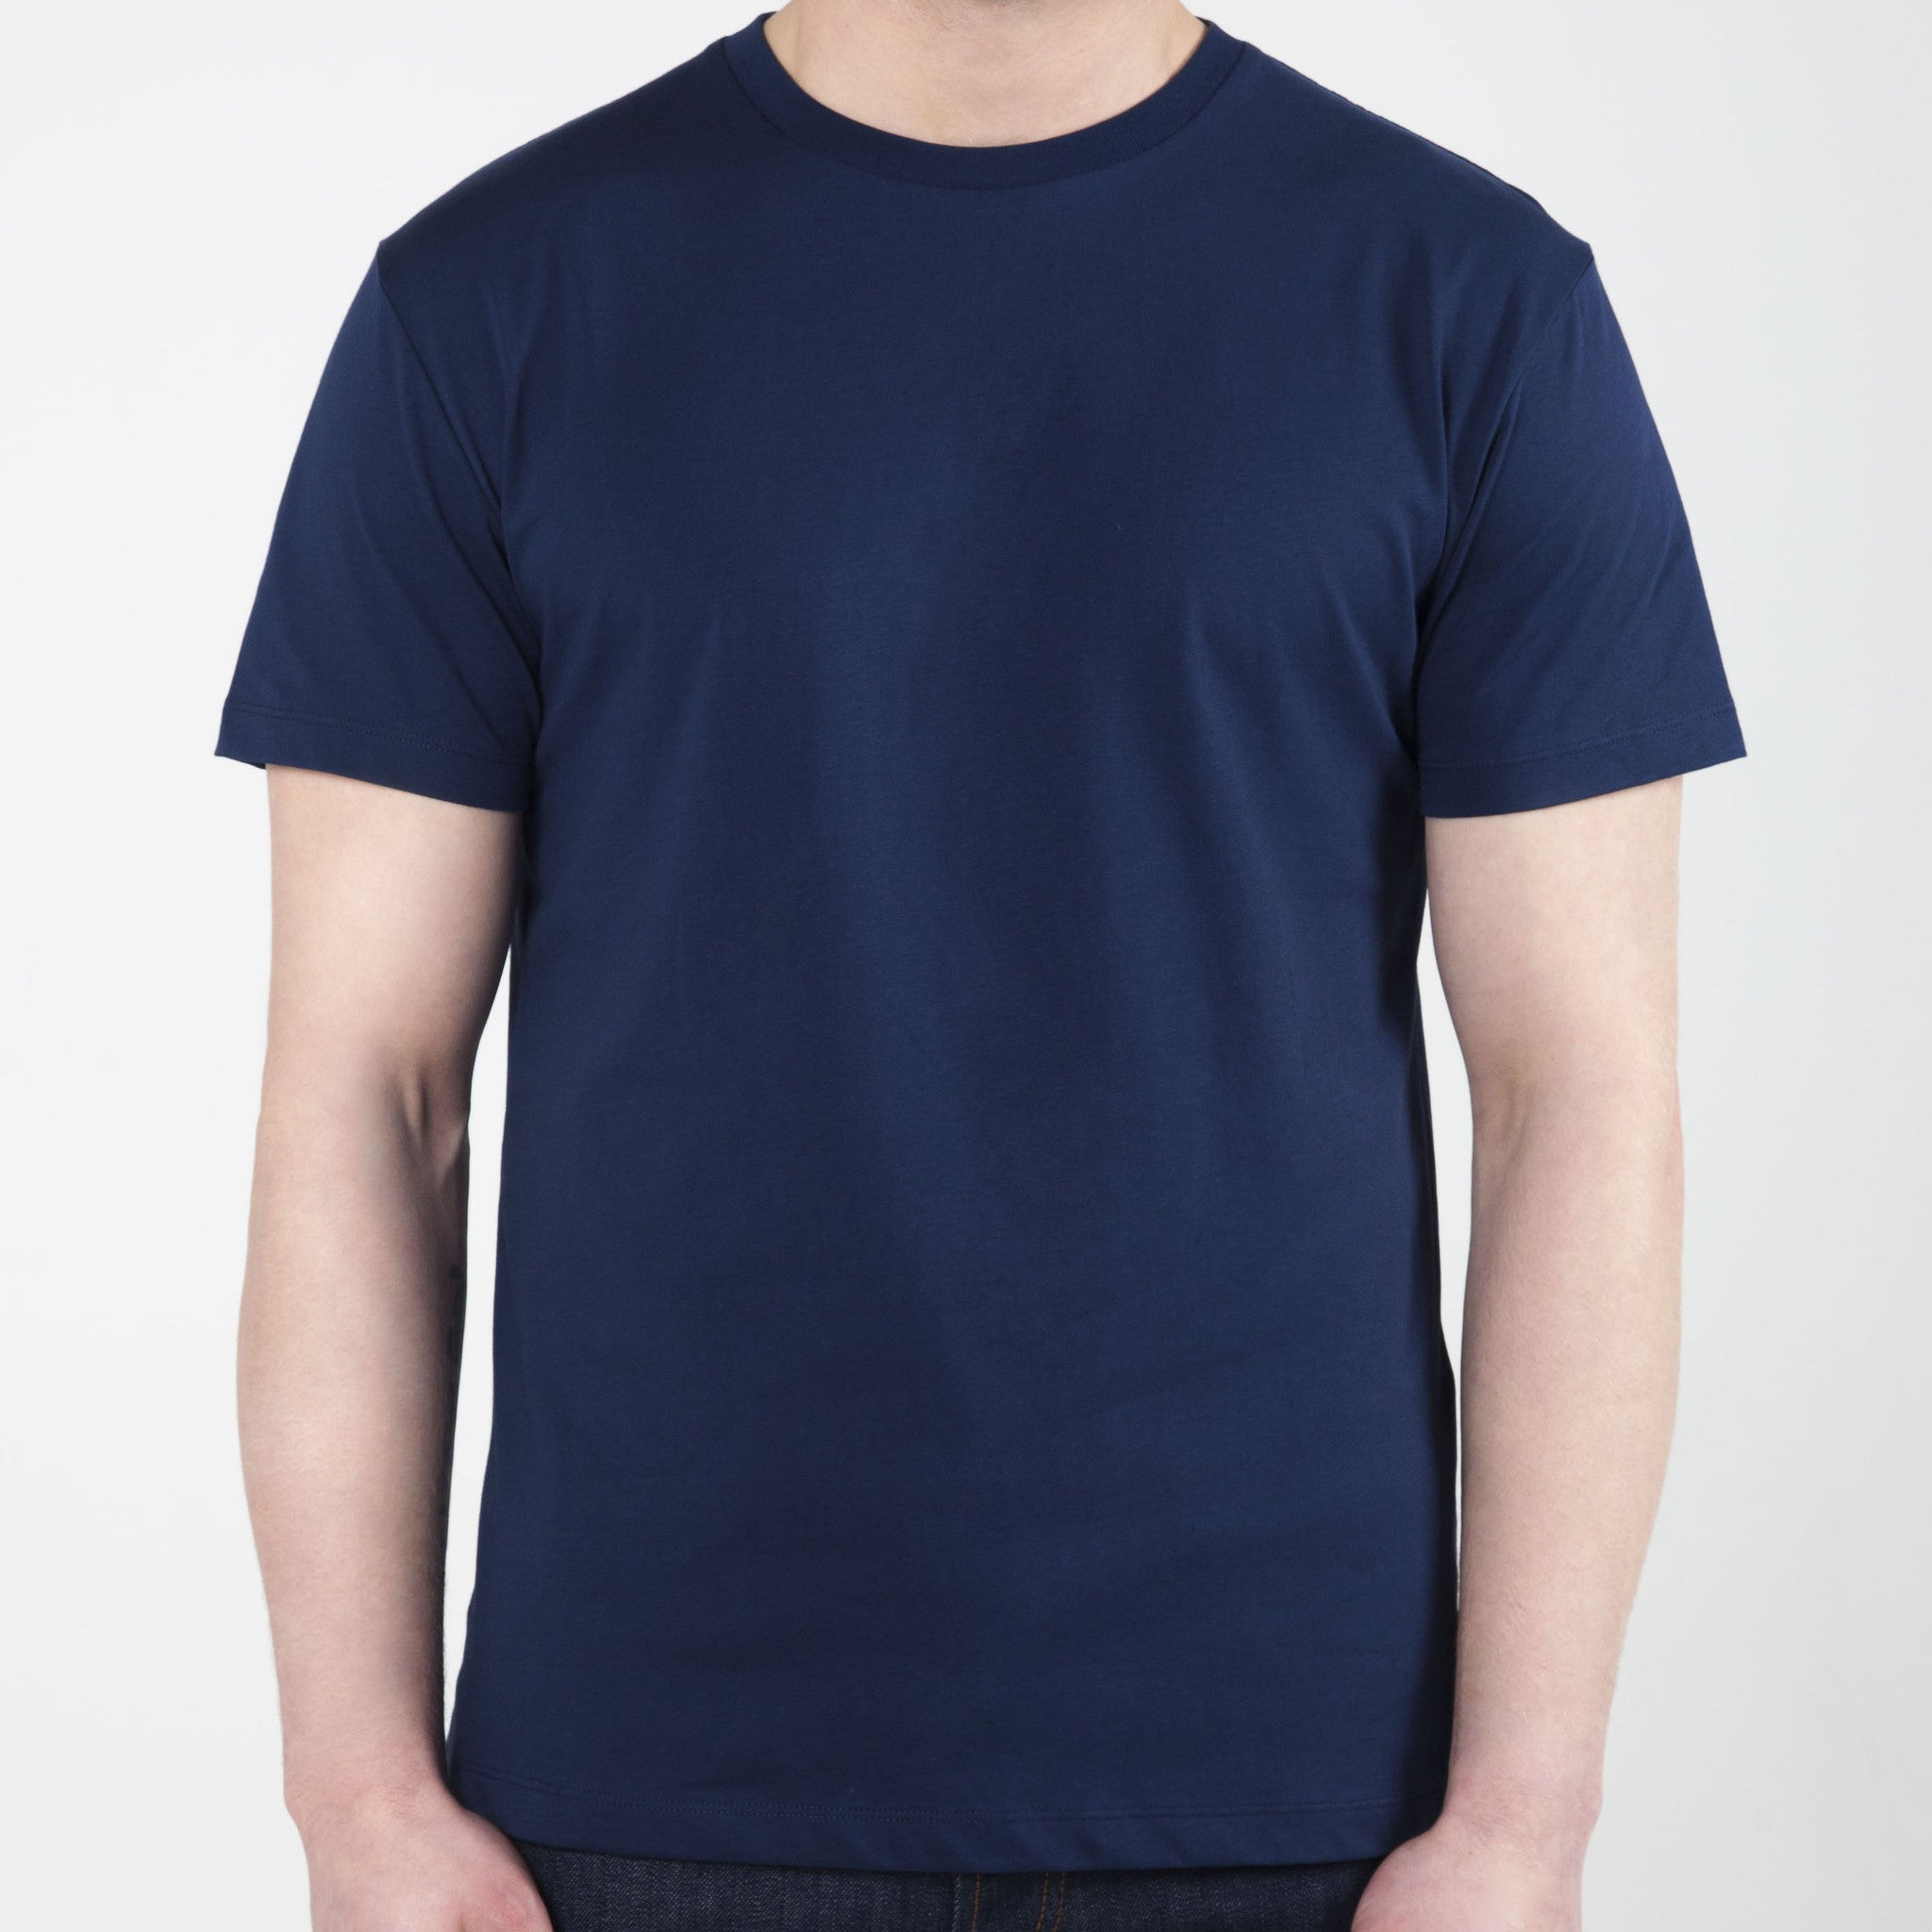 Navy Essential Tops - Premium Cotton Shirts, Essential T Shirts & Clothing